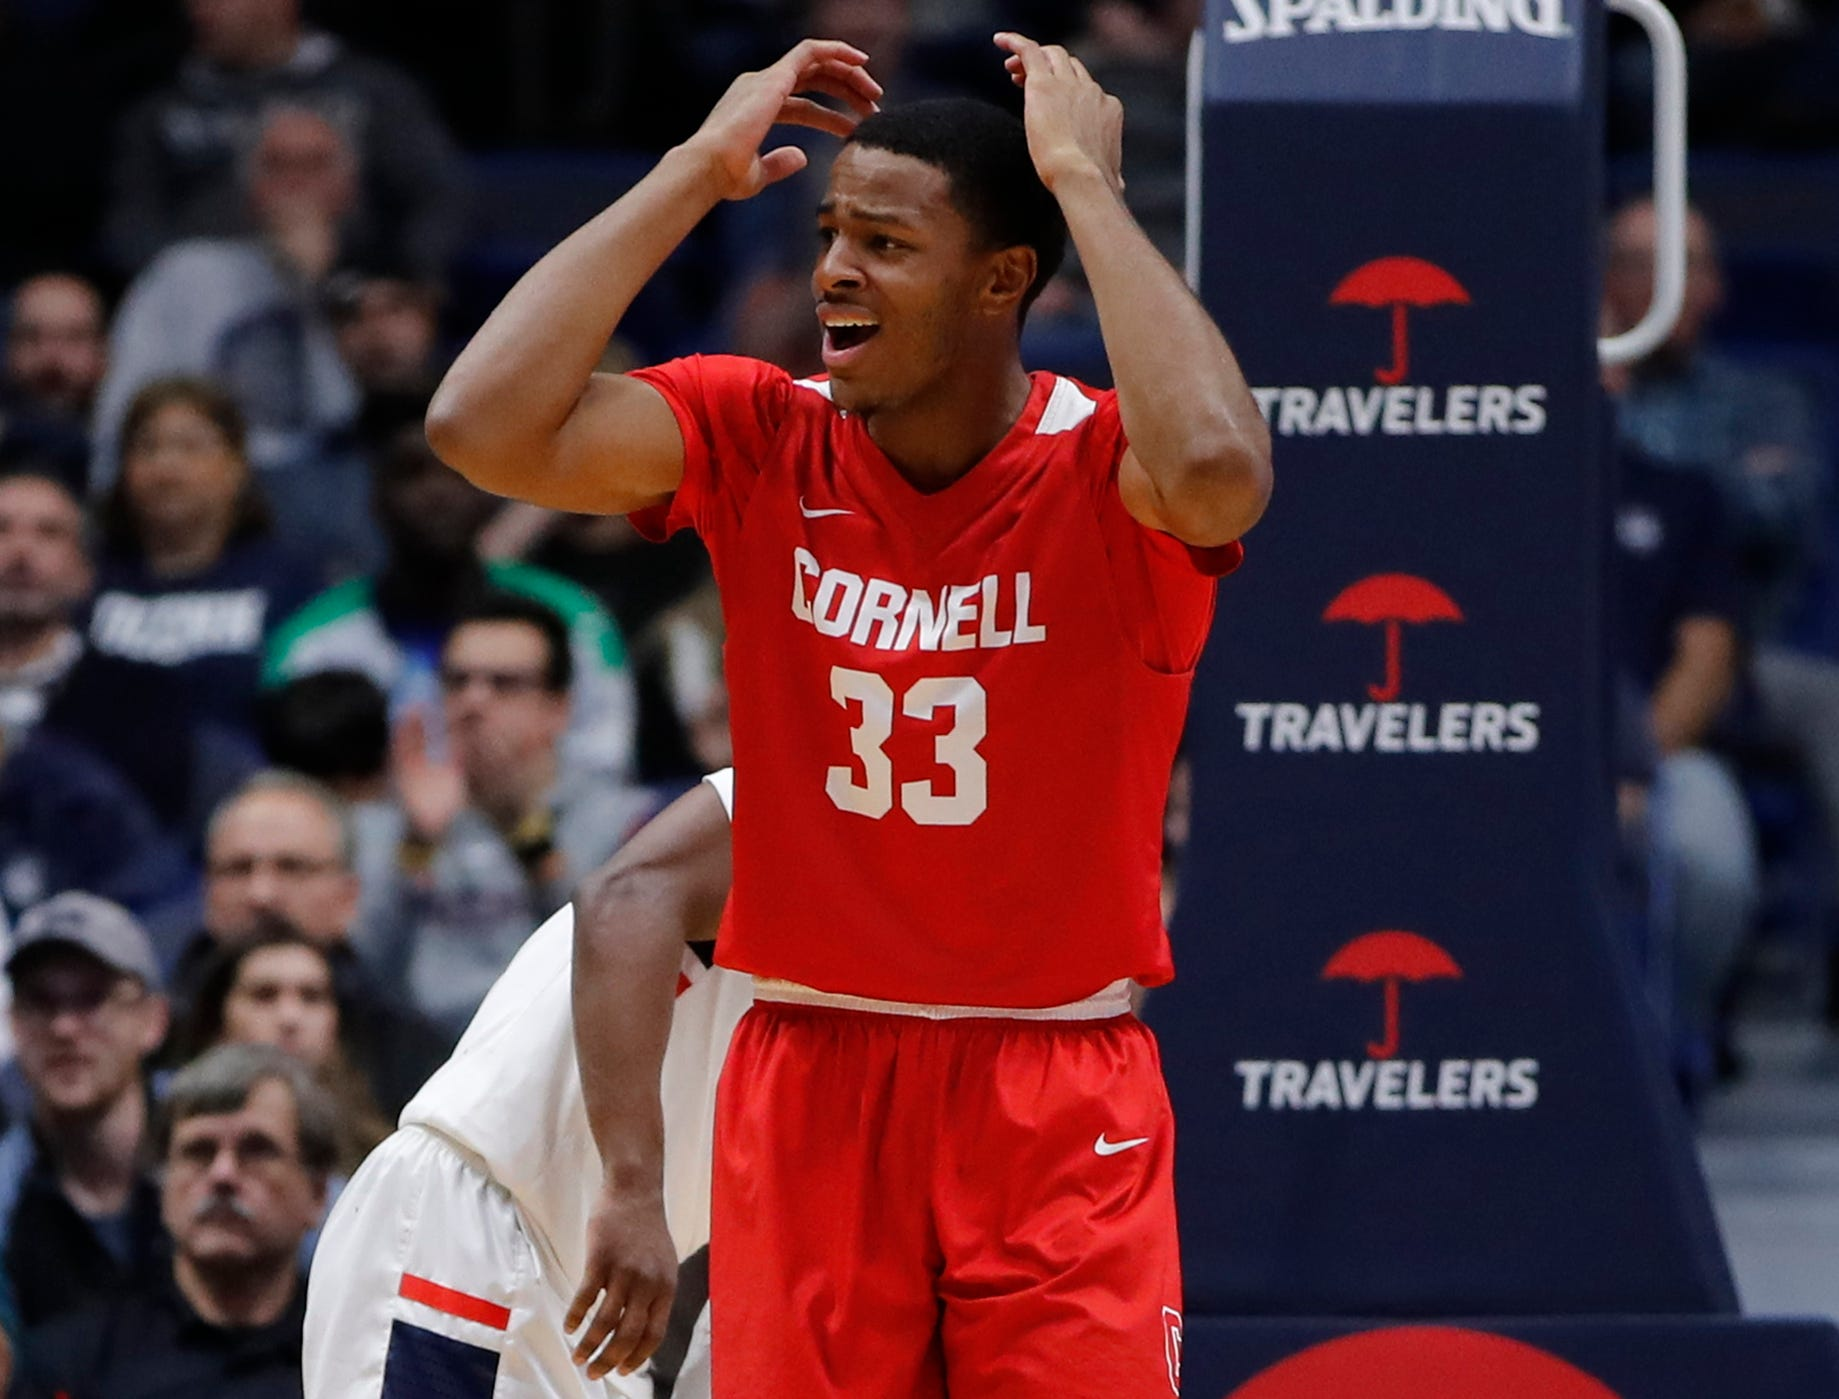 Nov 20, 2018; Storrs, CT, USA; Cornell Big Red forward Steven Julian (33) reacts after a call in the first half against the Connecticut Huskies at XL Center. Mandatory Credit: David Butler II-USA TODAY Sports